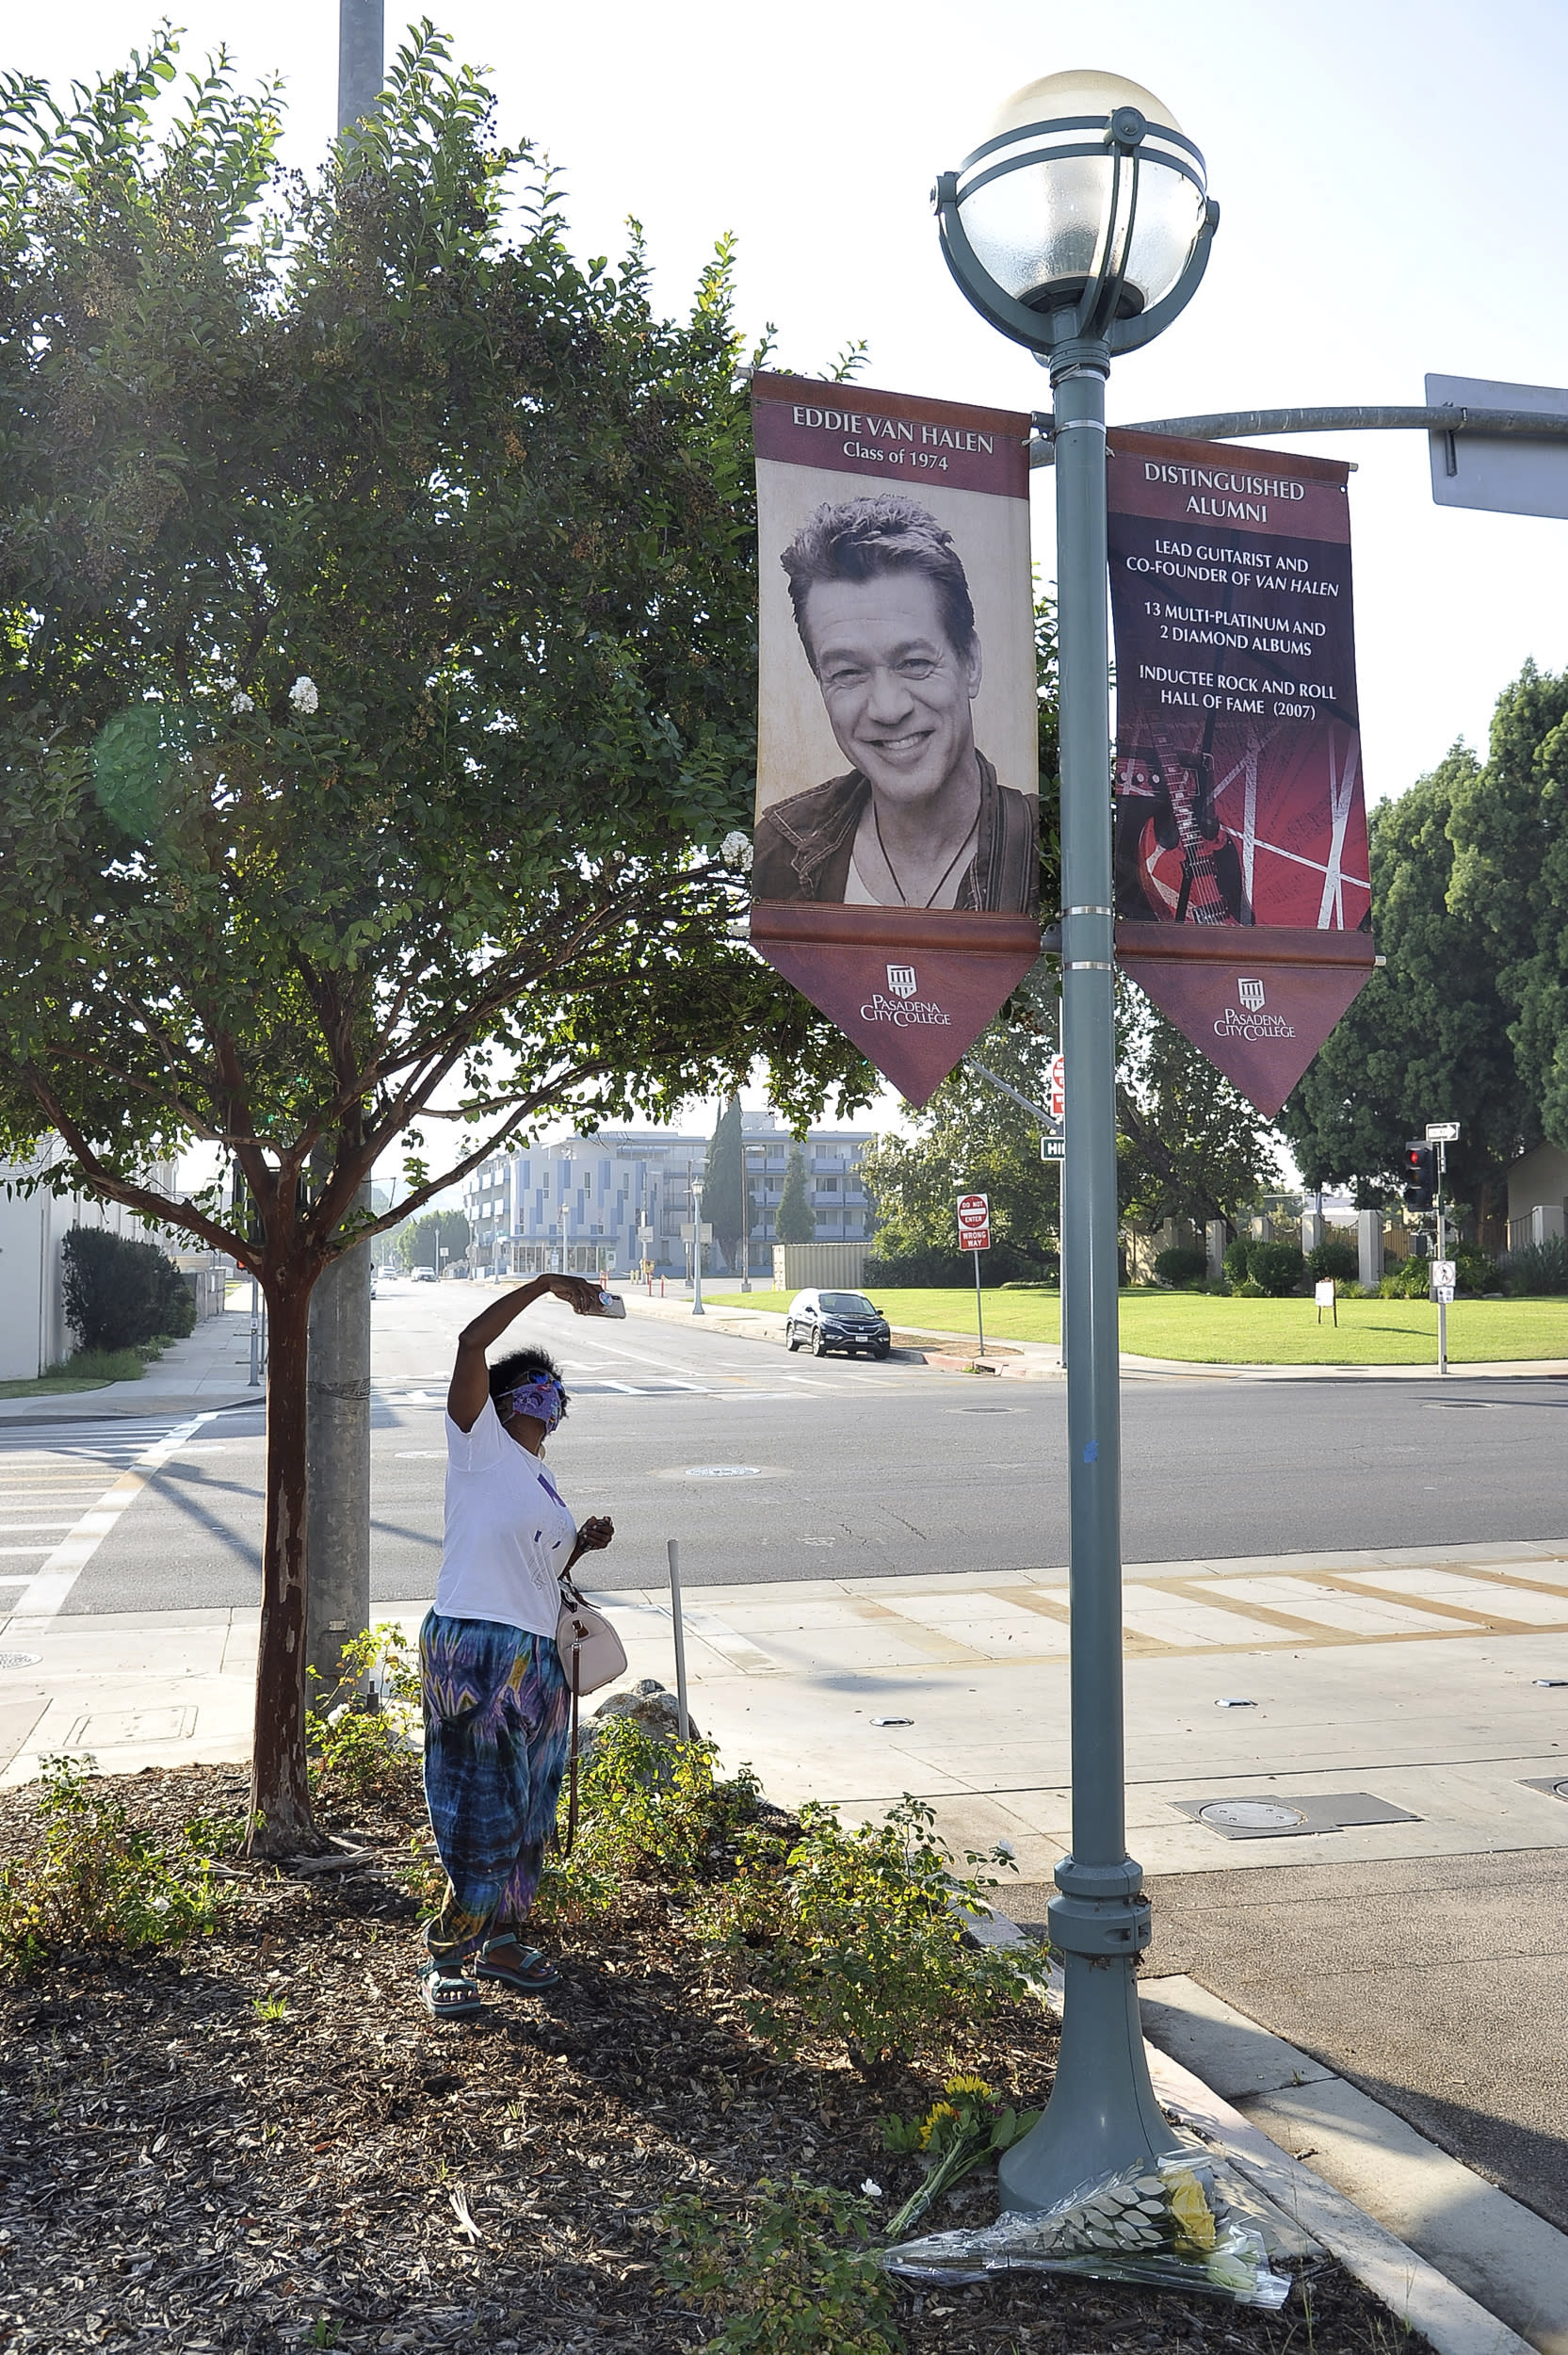 Daniel Gaither, of Pasadena, photographs a banner acknowledging distinguished Pasadena City College alumnus Eddie Van Halen, Tuesday, Oct. 6, 2020, at the college in Pasadena, Calif. Van Halen, who had battled cancer, died Tuesday at age 65. (Richard Shotwell/Invision/AP)